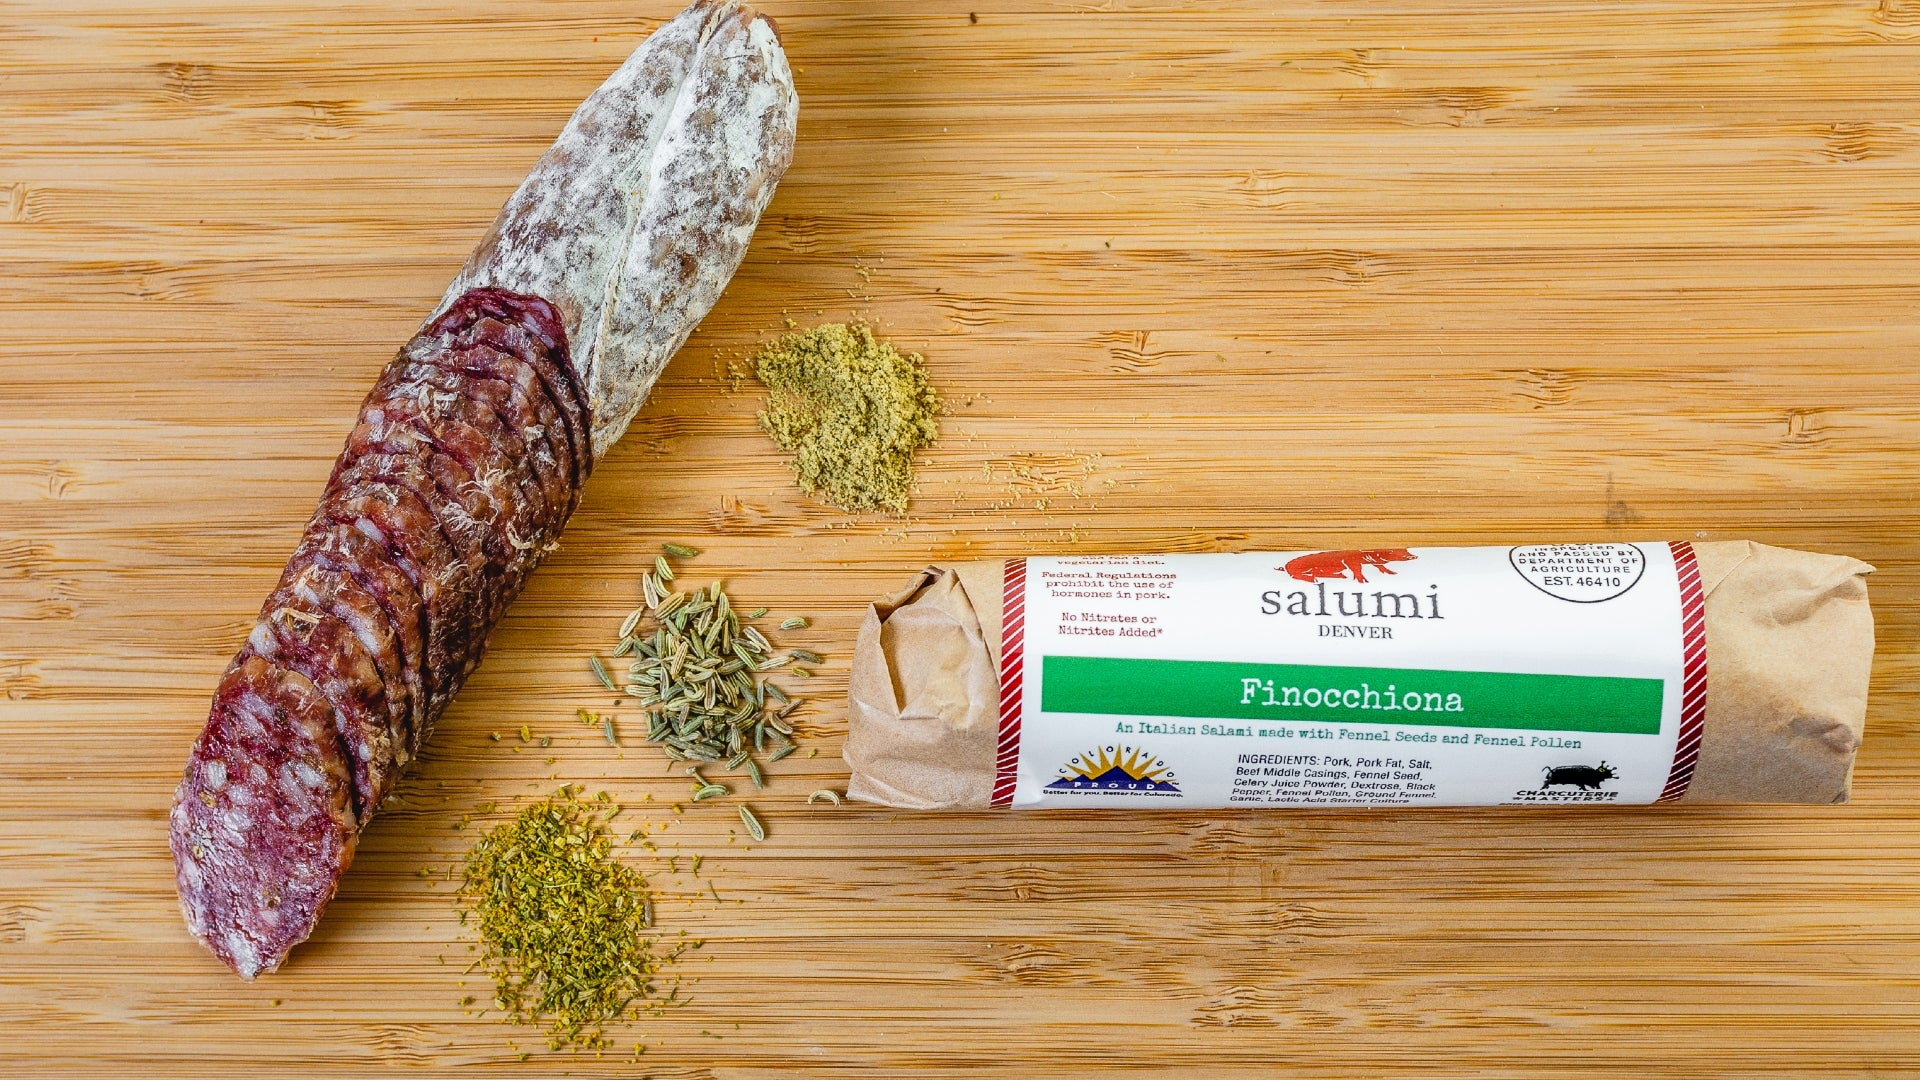 Two pieces of Finnochiana salami, one in packaging and one cut into pieces, on a cutting board with spices in between them.